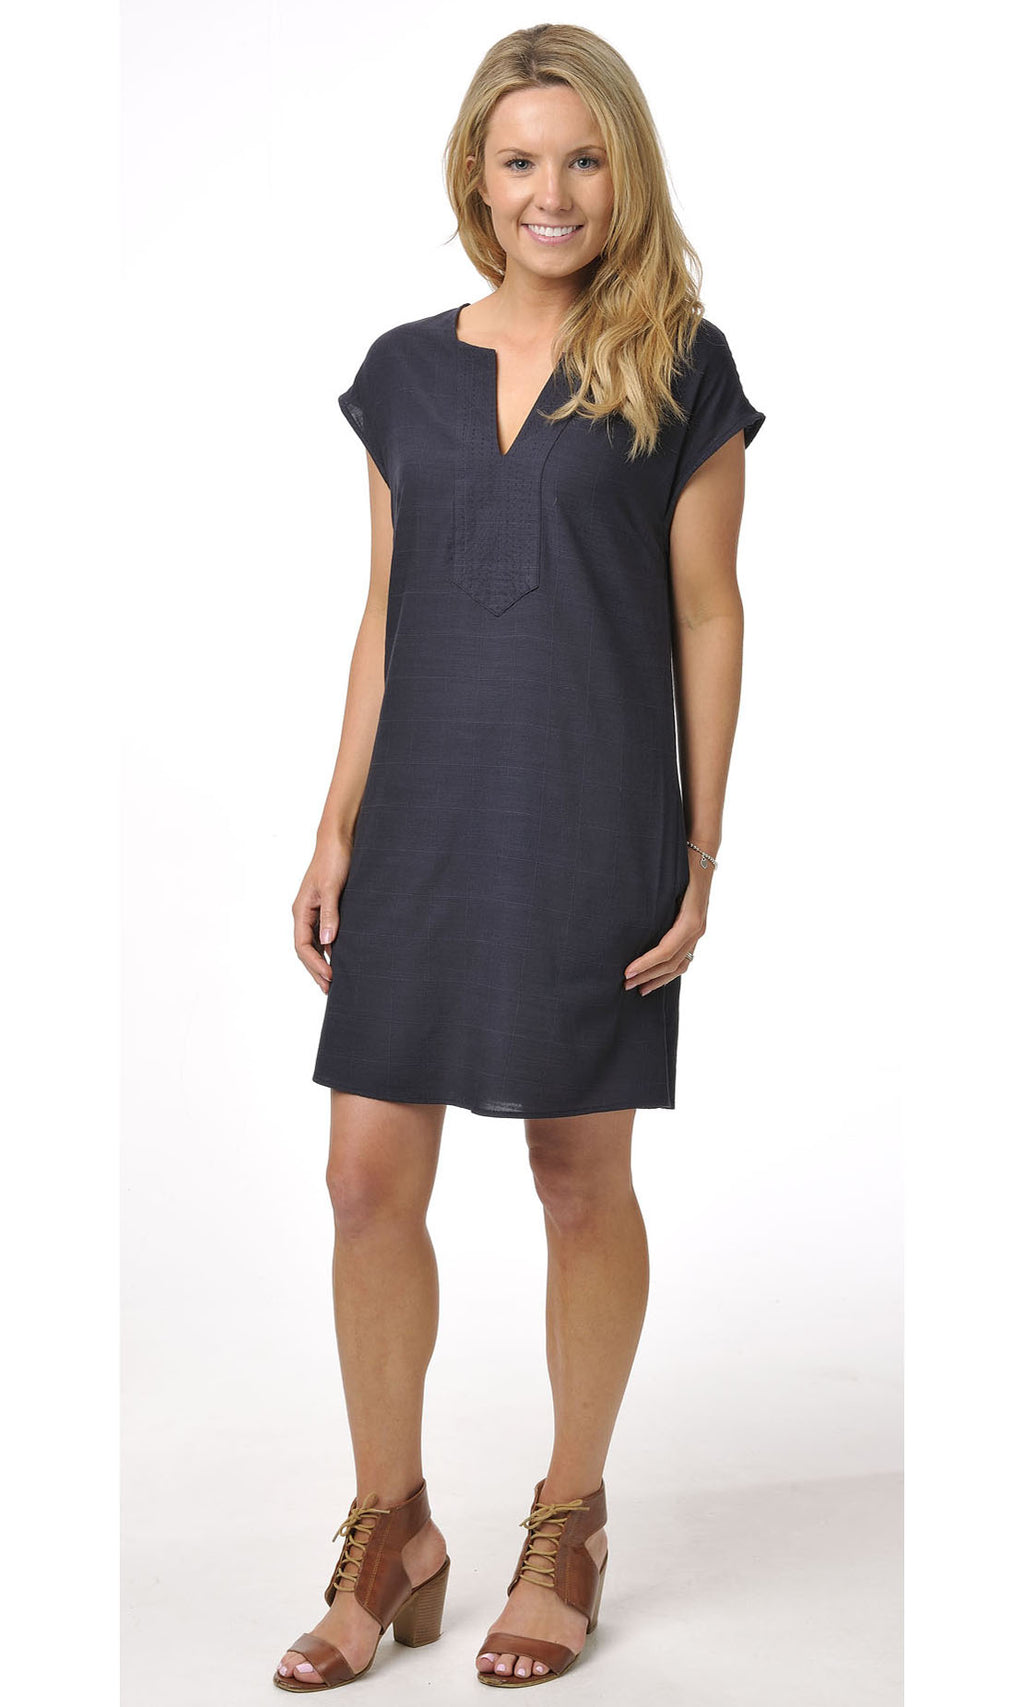 Bamboo Dress Plain Colour Navy